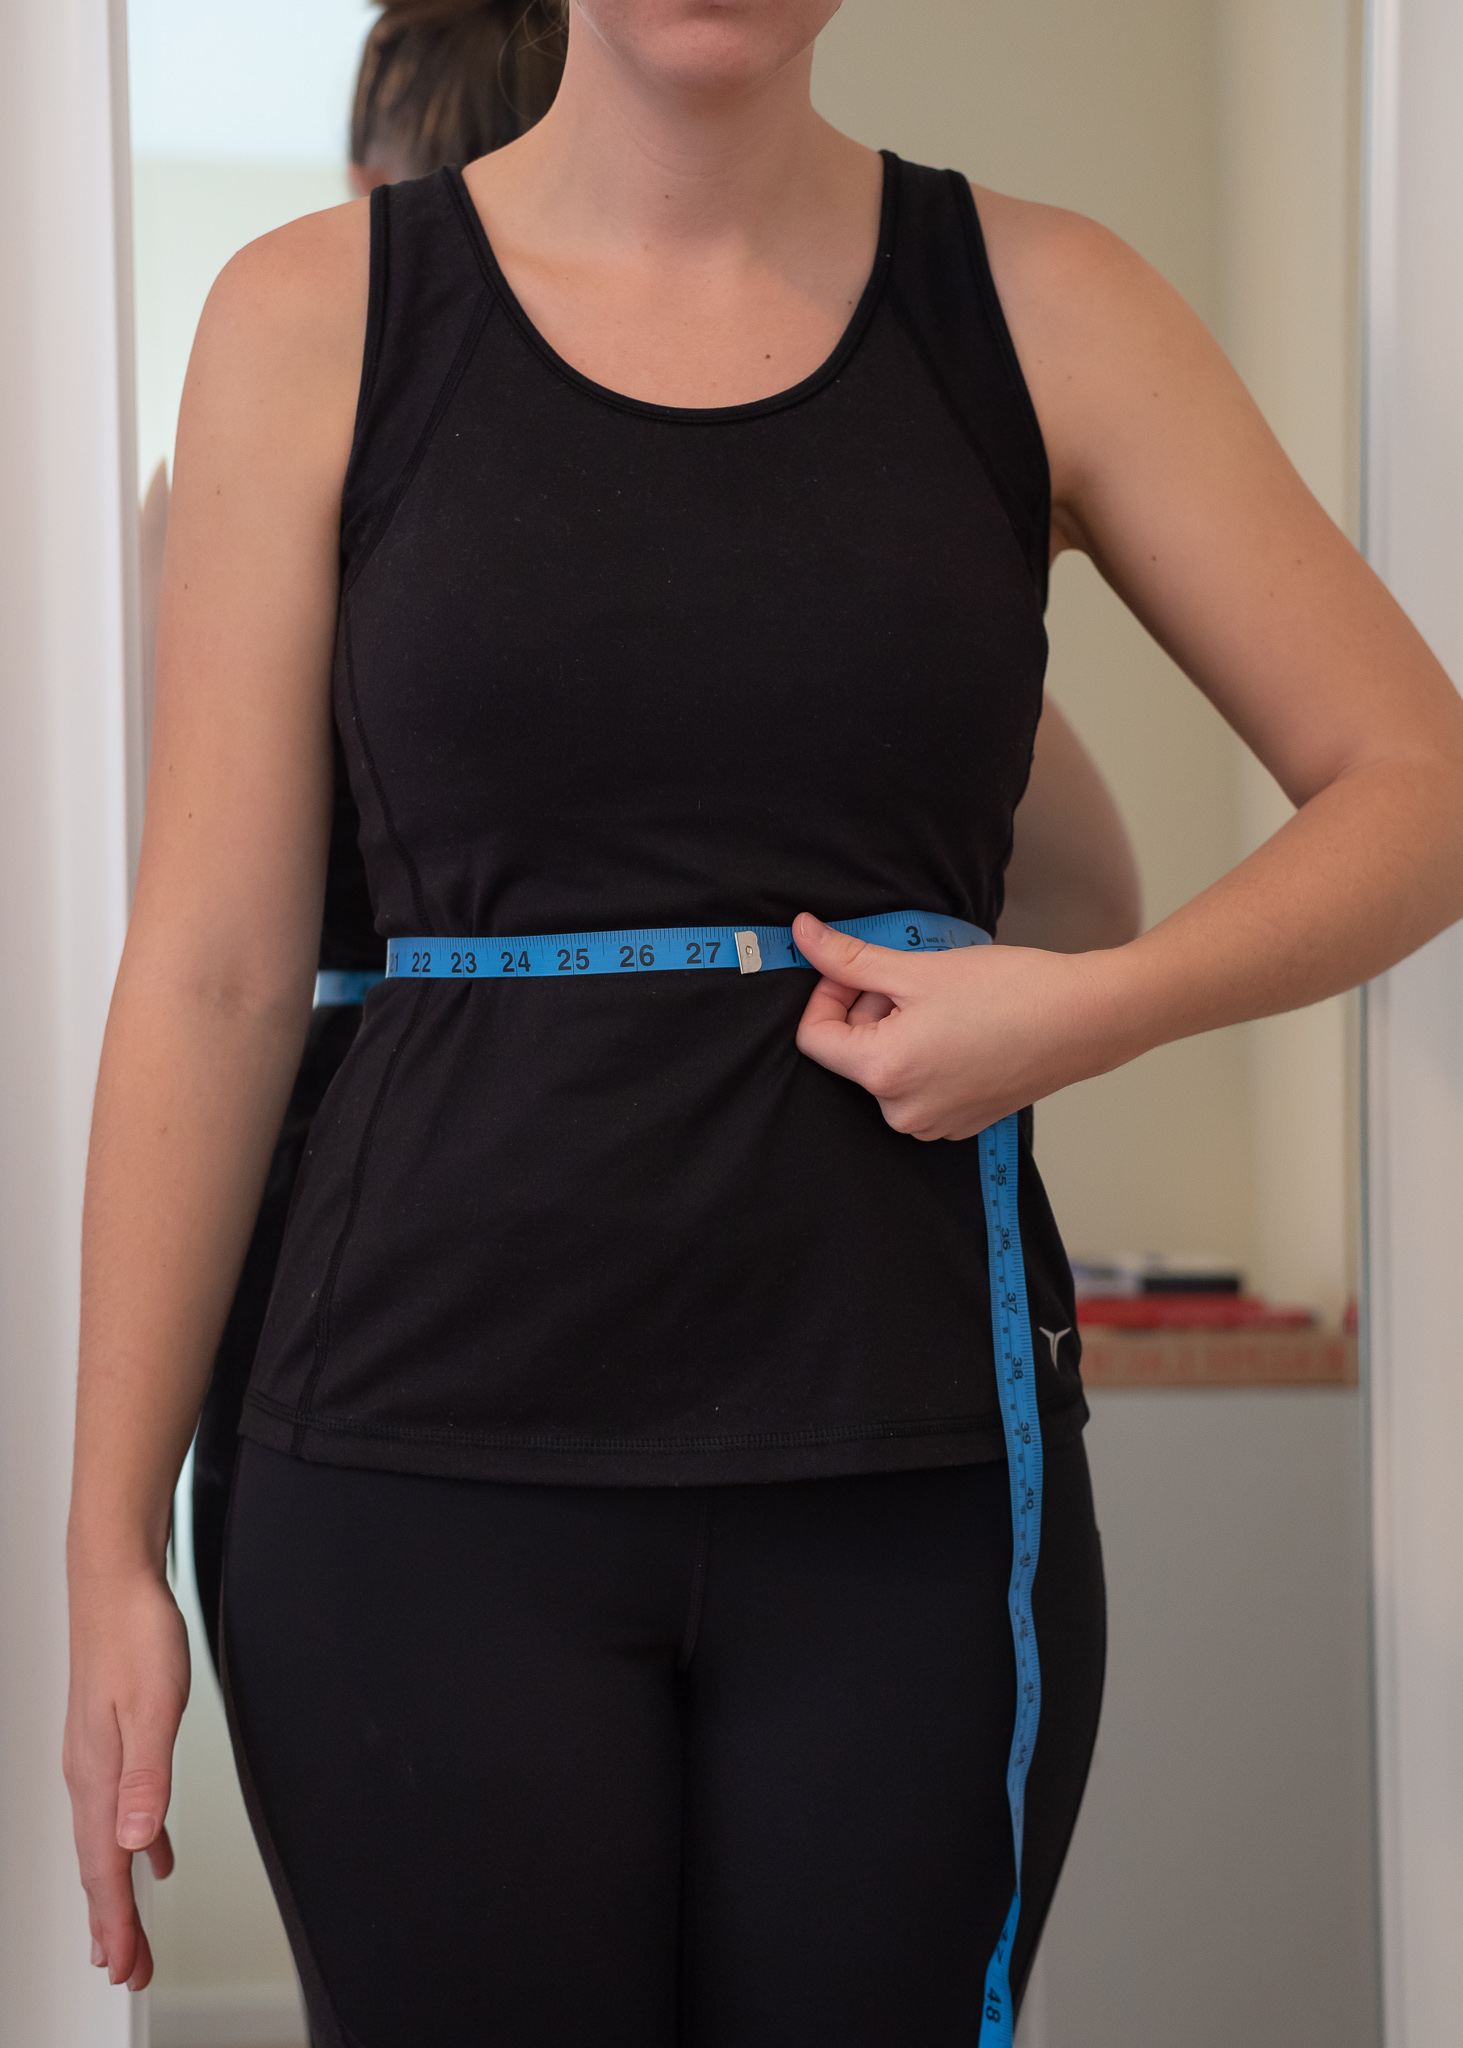 How to take your own body measurements